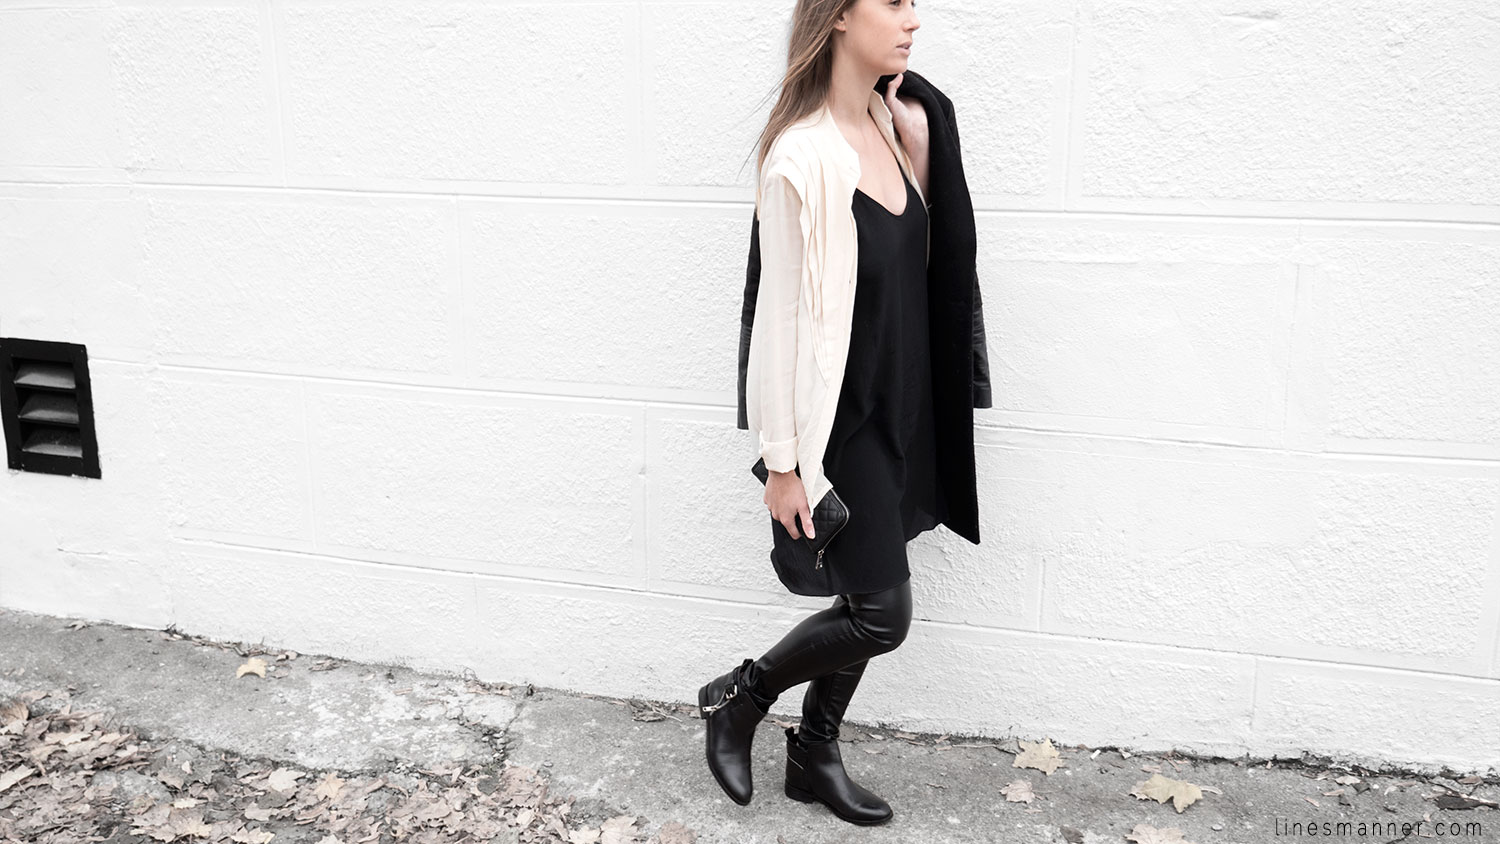 Lines-Manner-Timeless-Comfort-Essentials-Monochrome-Trend-Minimal-Textures-Fall-Leather-Details-Simplicity-Modern-Basics-Outfit-Structure-Relaxed-Leather-Luxurious-Sophistication-7